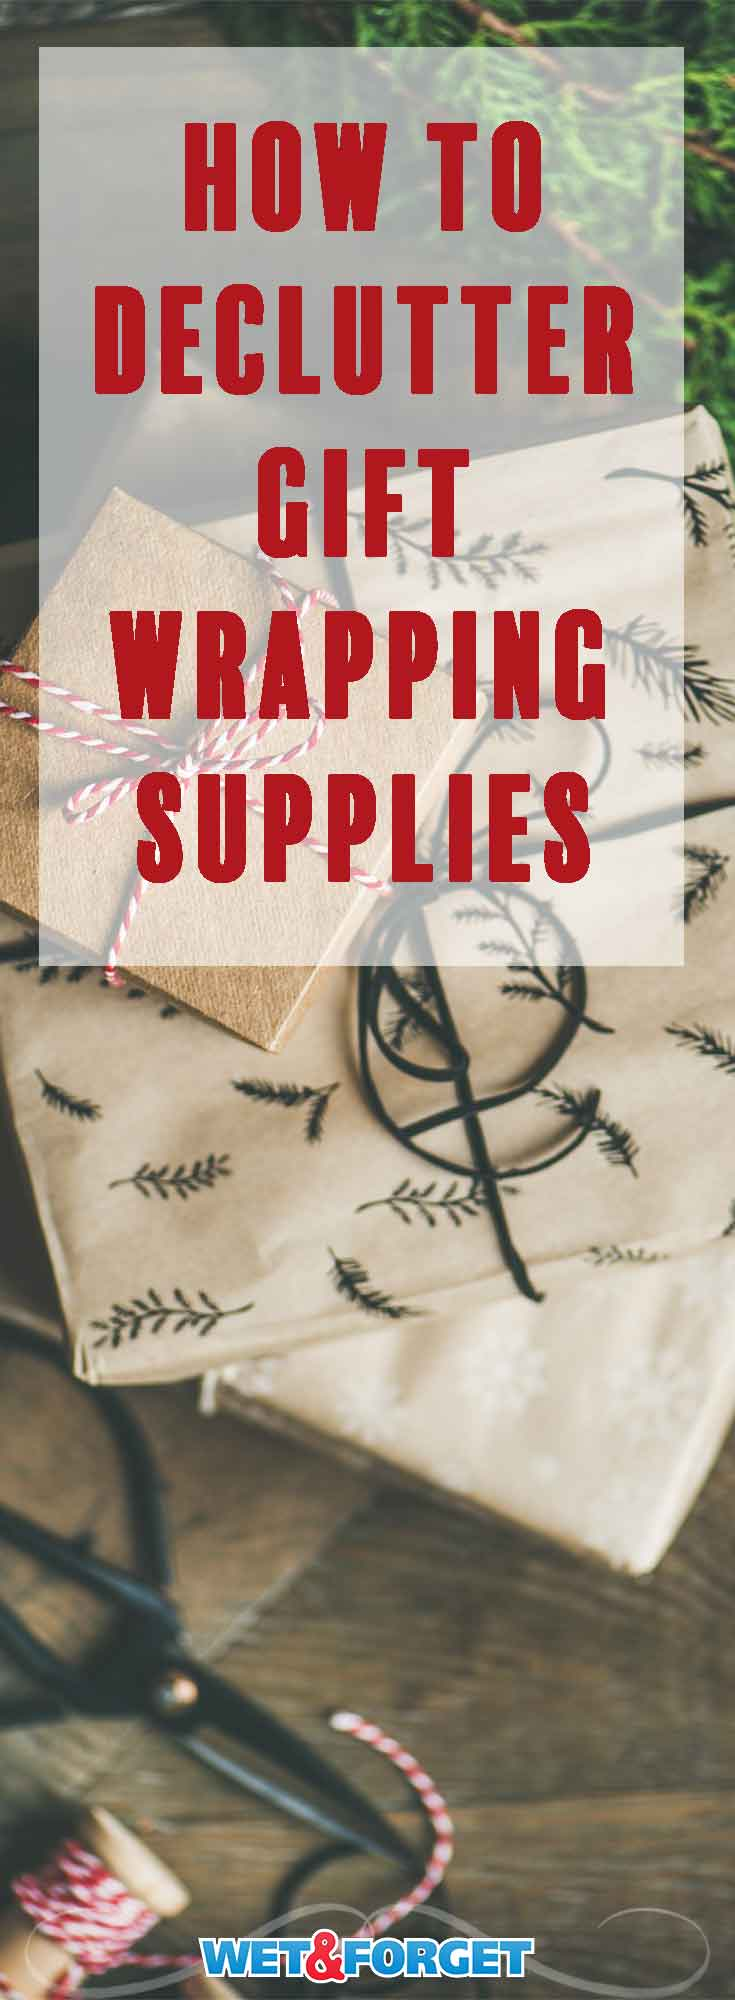 Gift wrap can accumulate quickly over the holidays! Declutter and organize your gift wrap with these DIY methods.